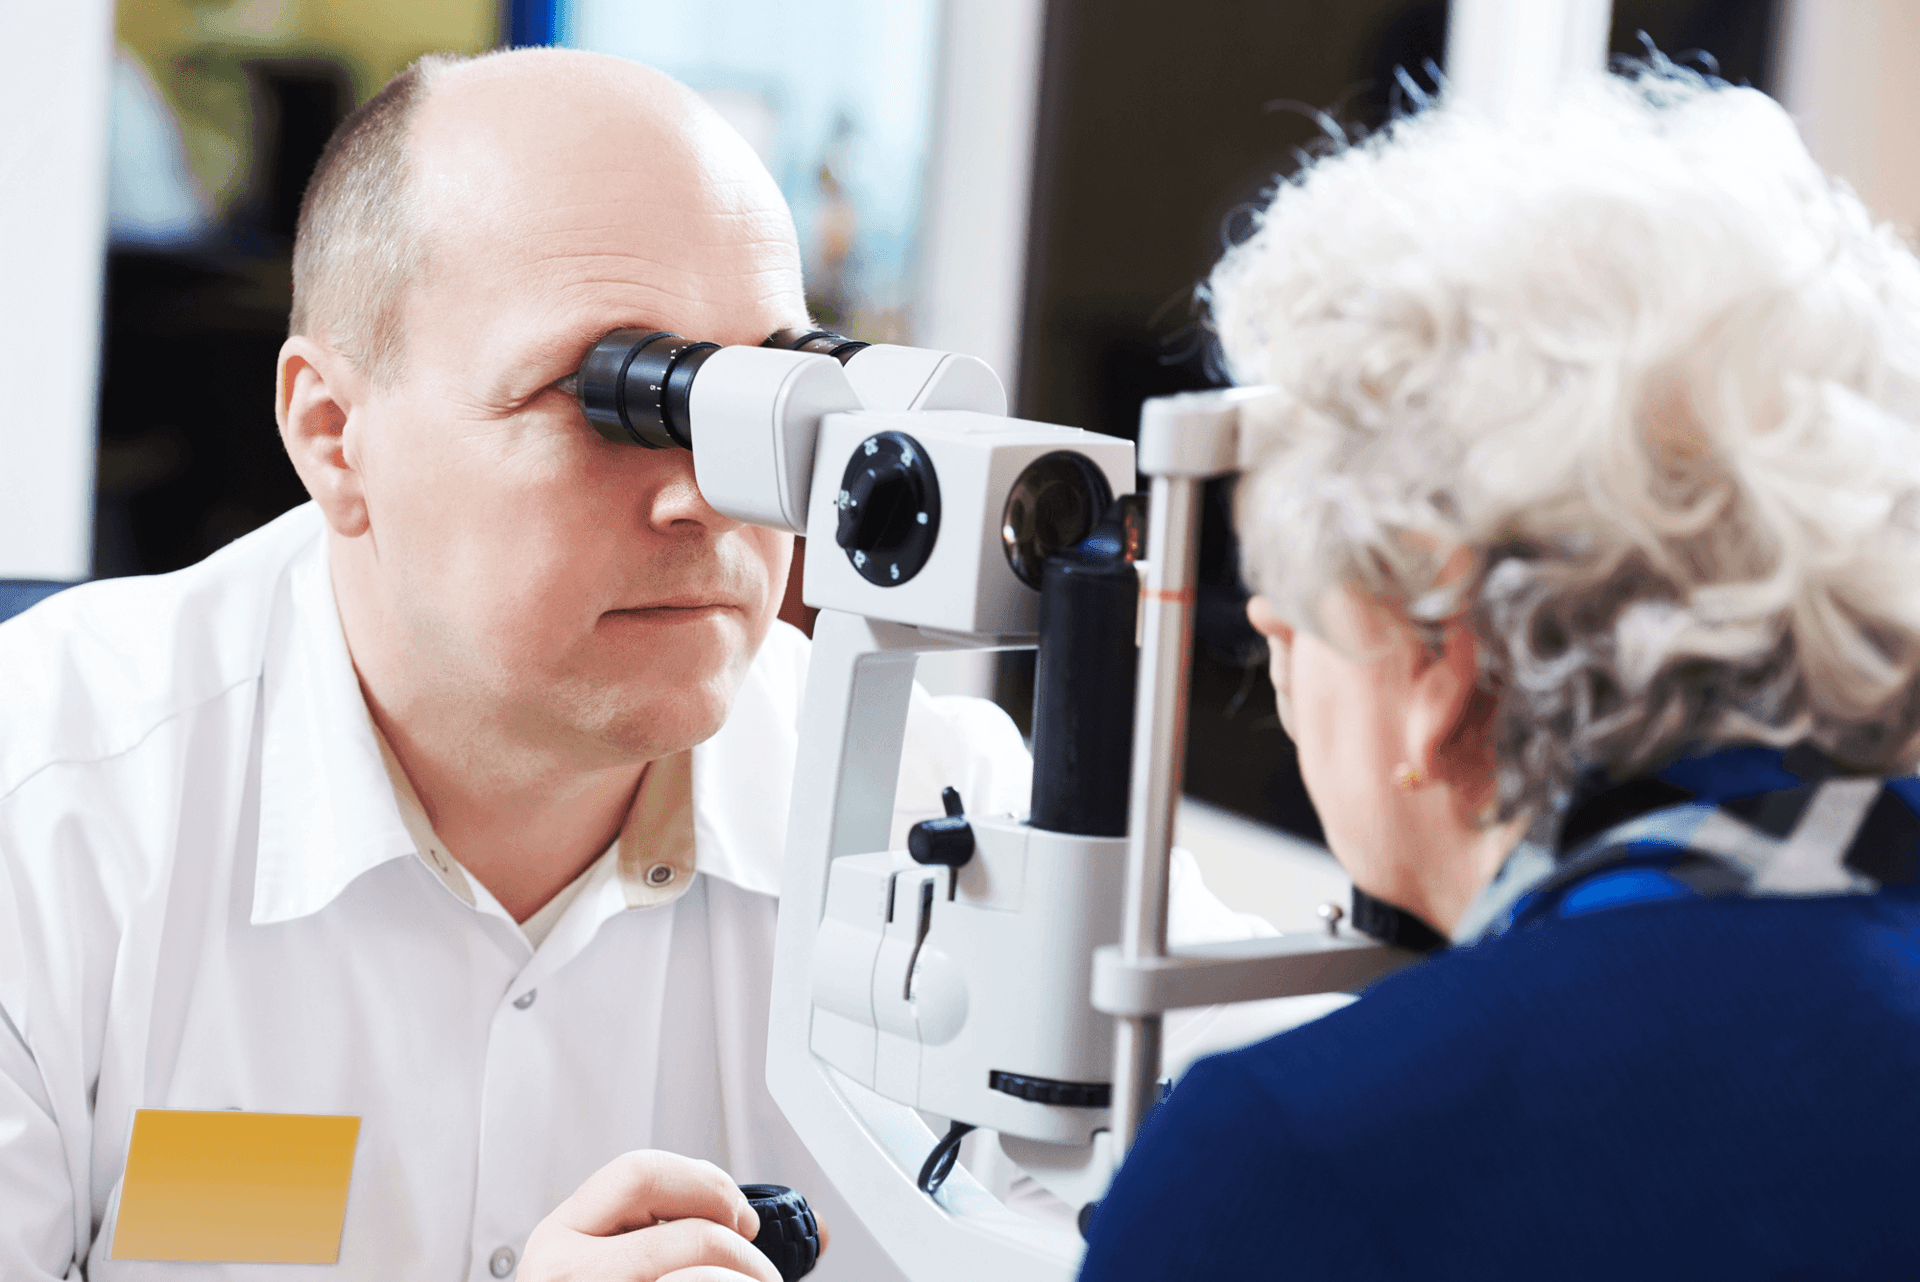 older woman getting an eye exam from doctor